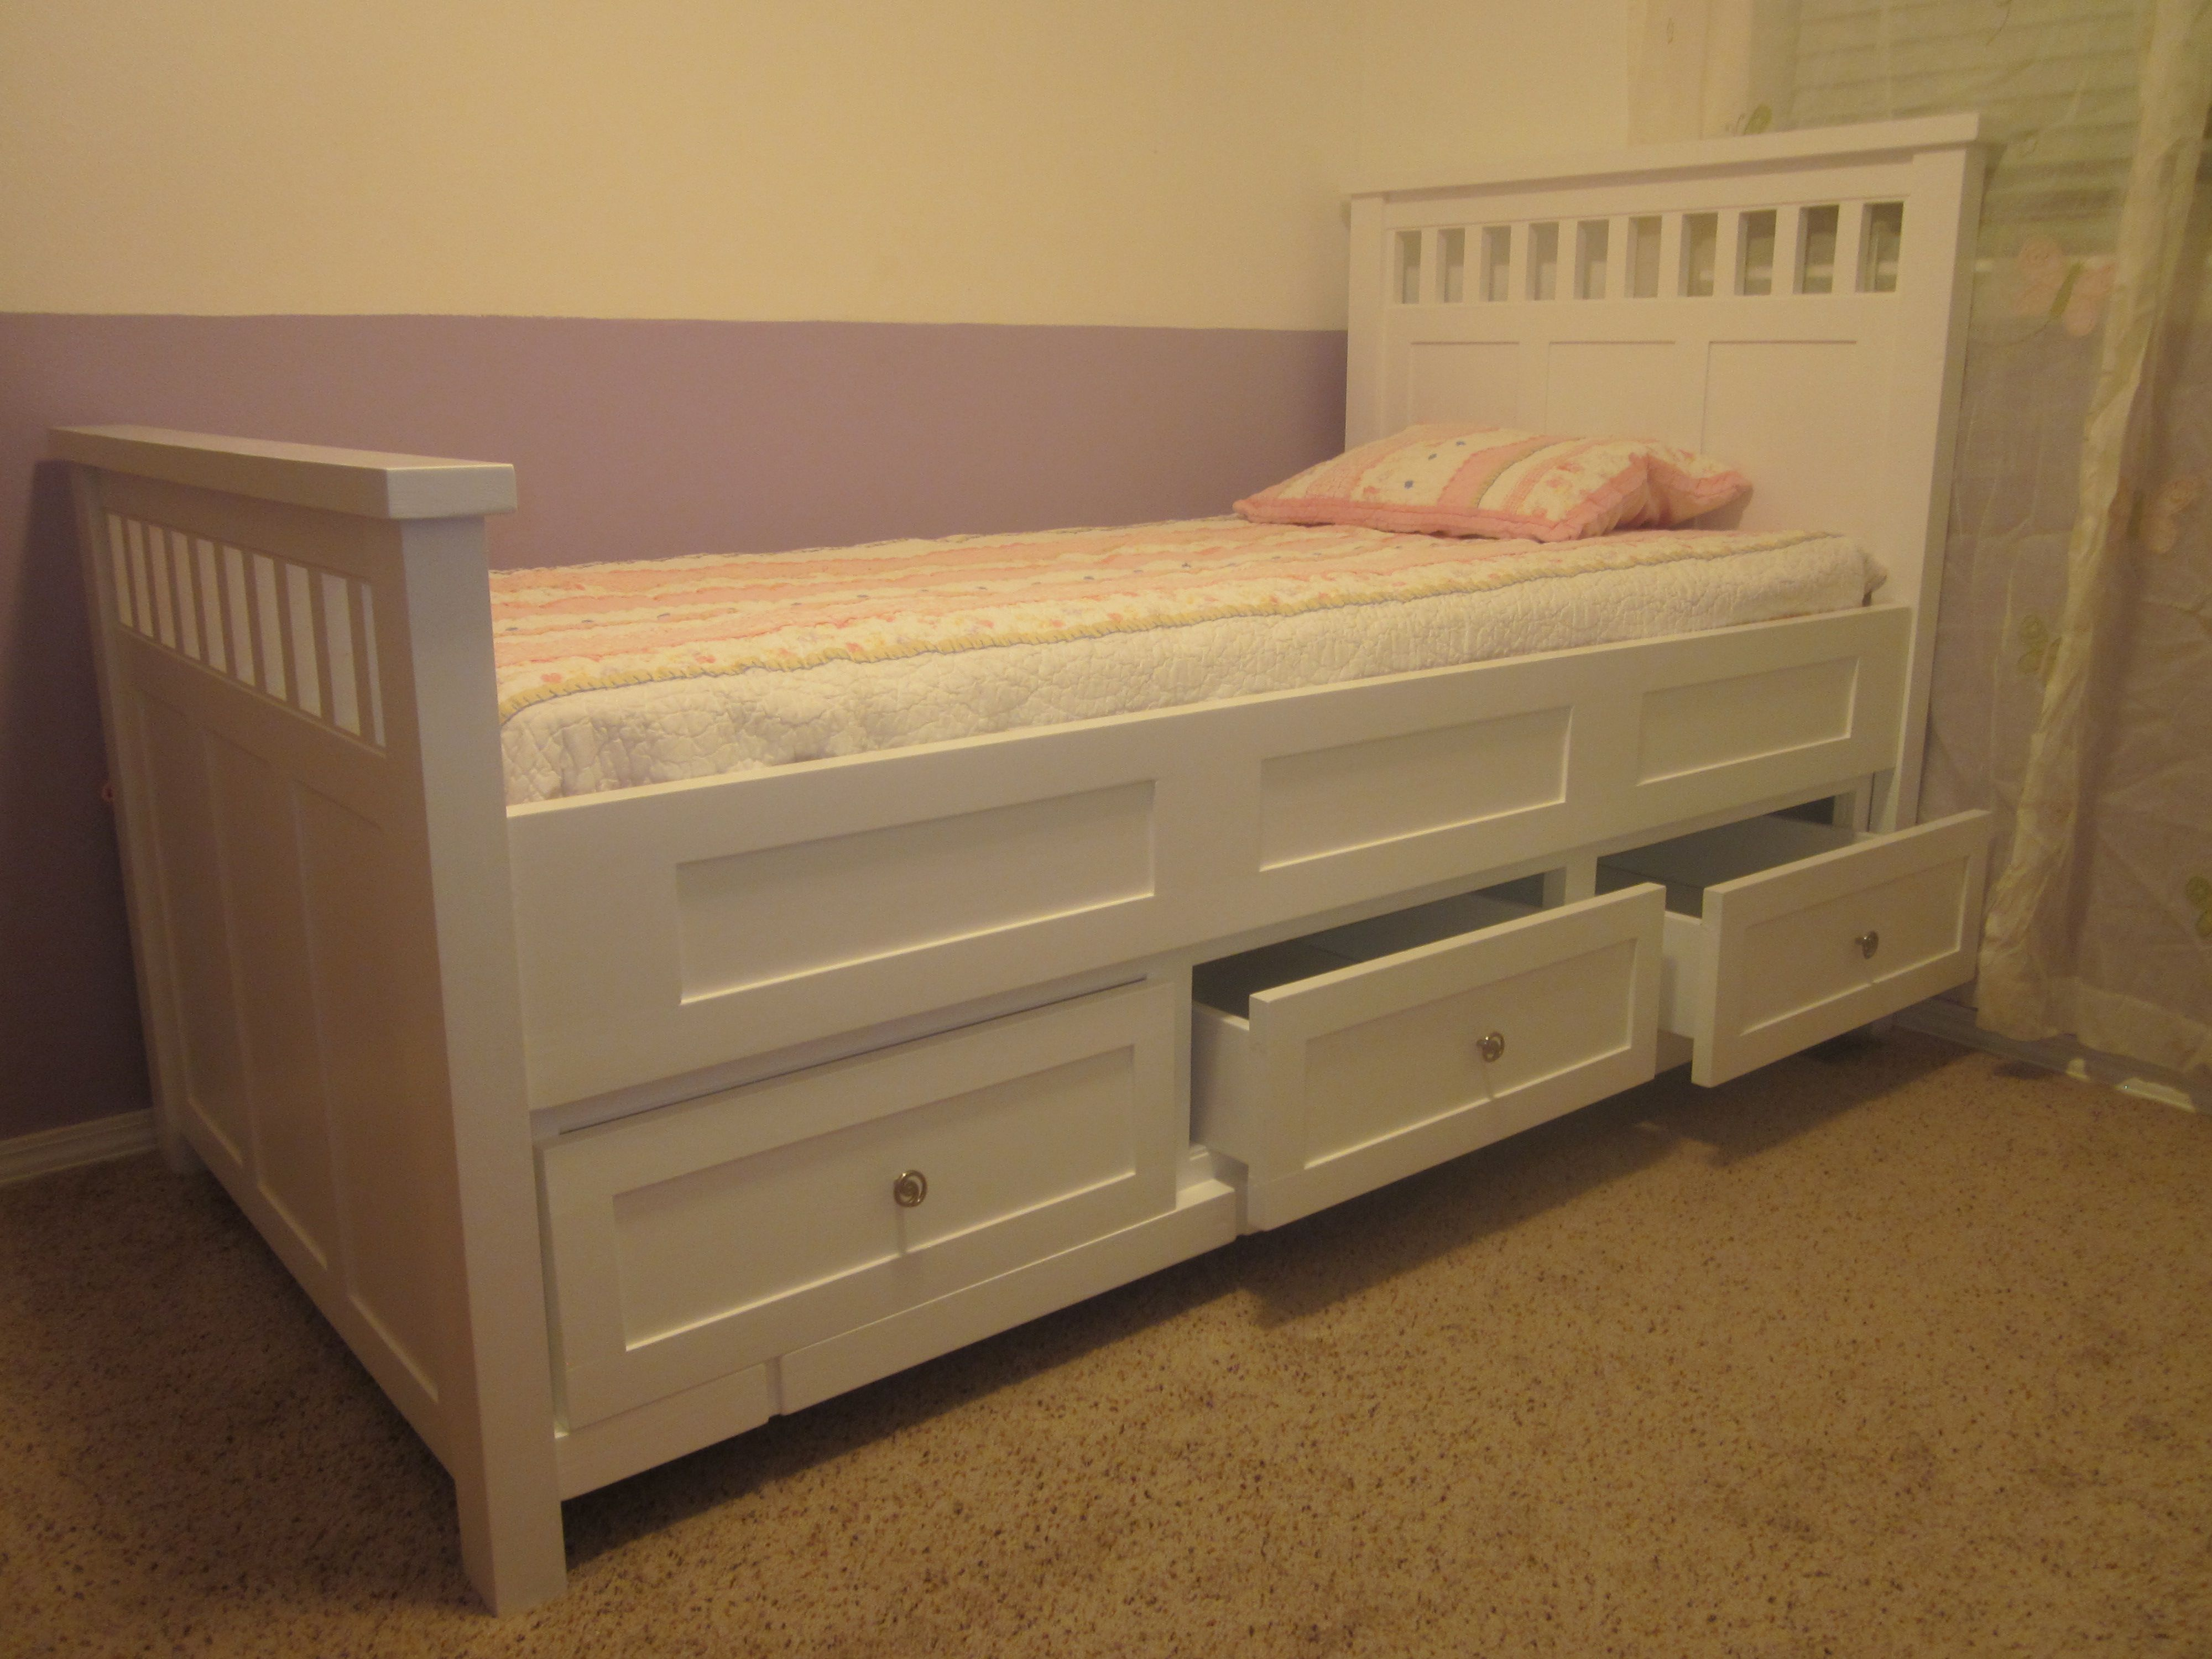 Single Bed Frame With Drawers Khcjzpg Bed Frame With Drawers Twin Bed Frame Cheap Bed Frame